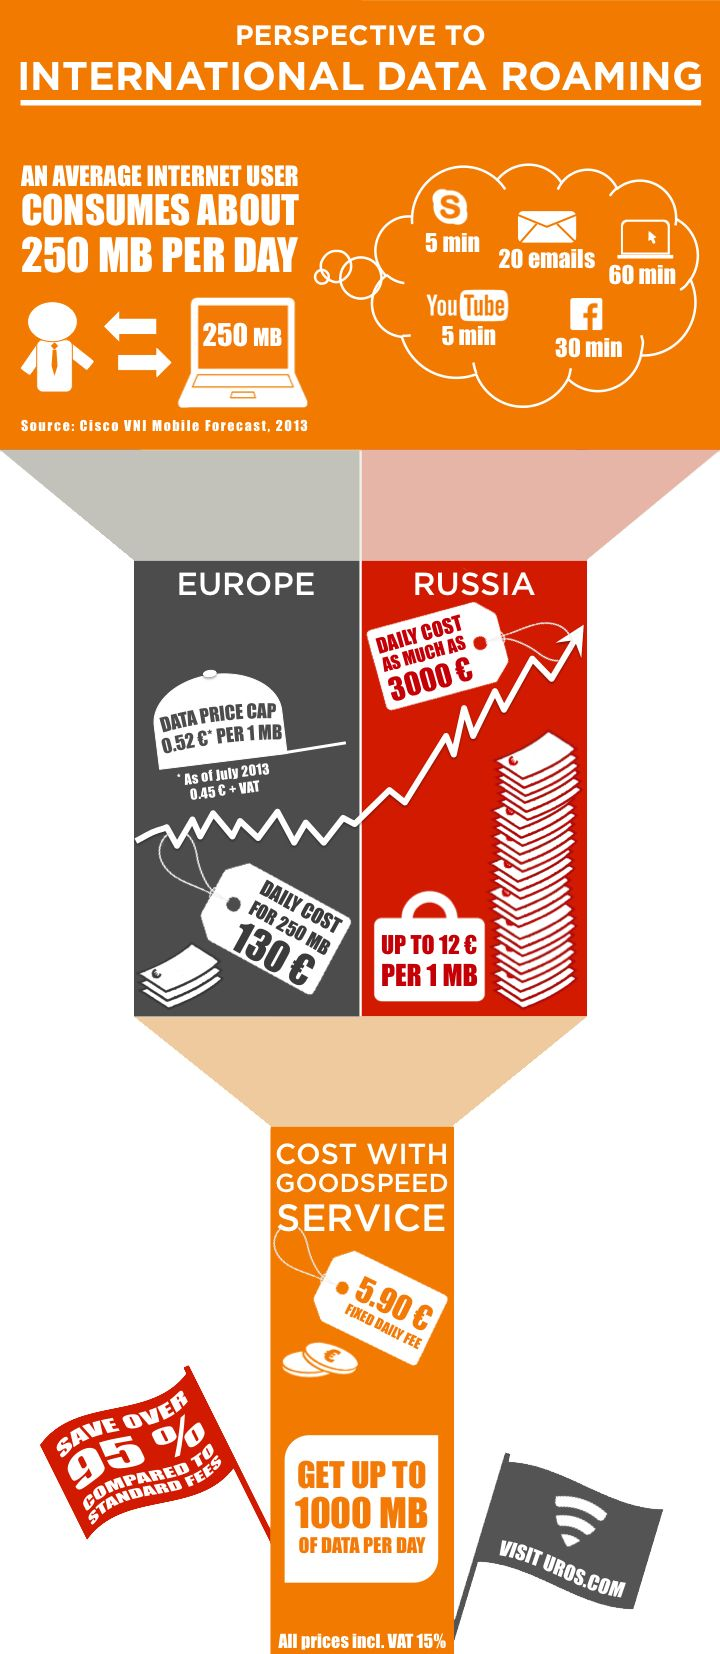 Check out our info graphic to put the numbers regarding roaming costs into perspective. Are you surprised about how much you can save with Goodspeed?